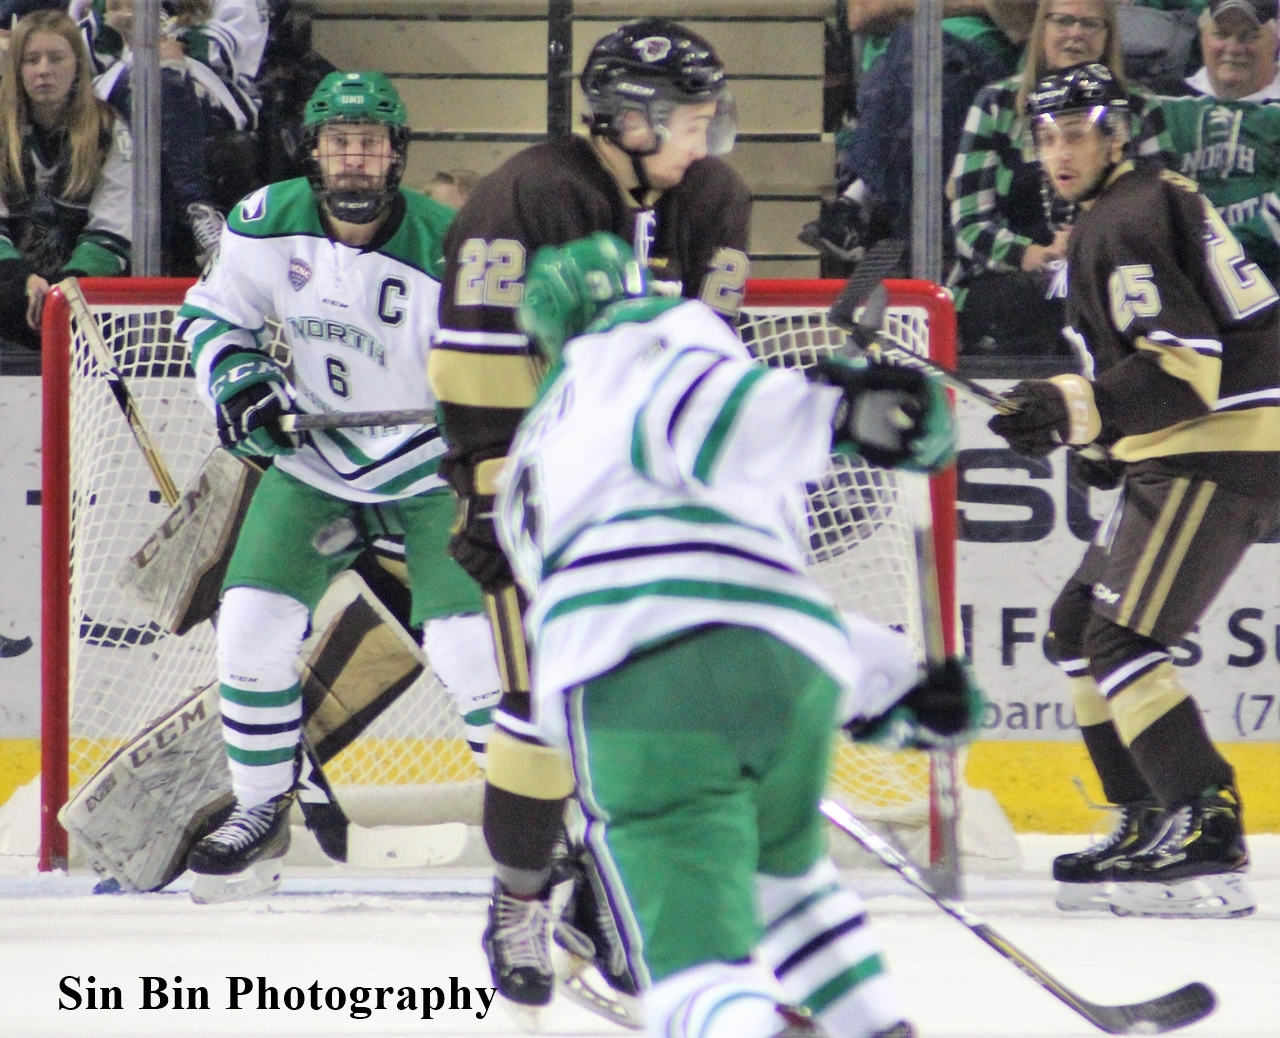 UND Hockey: Looking Forward to the Second Half